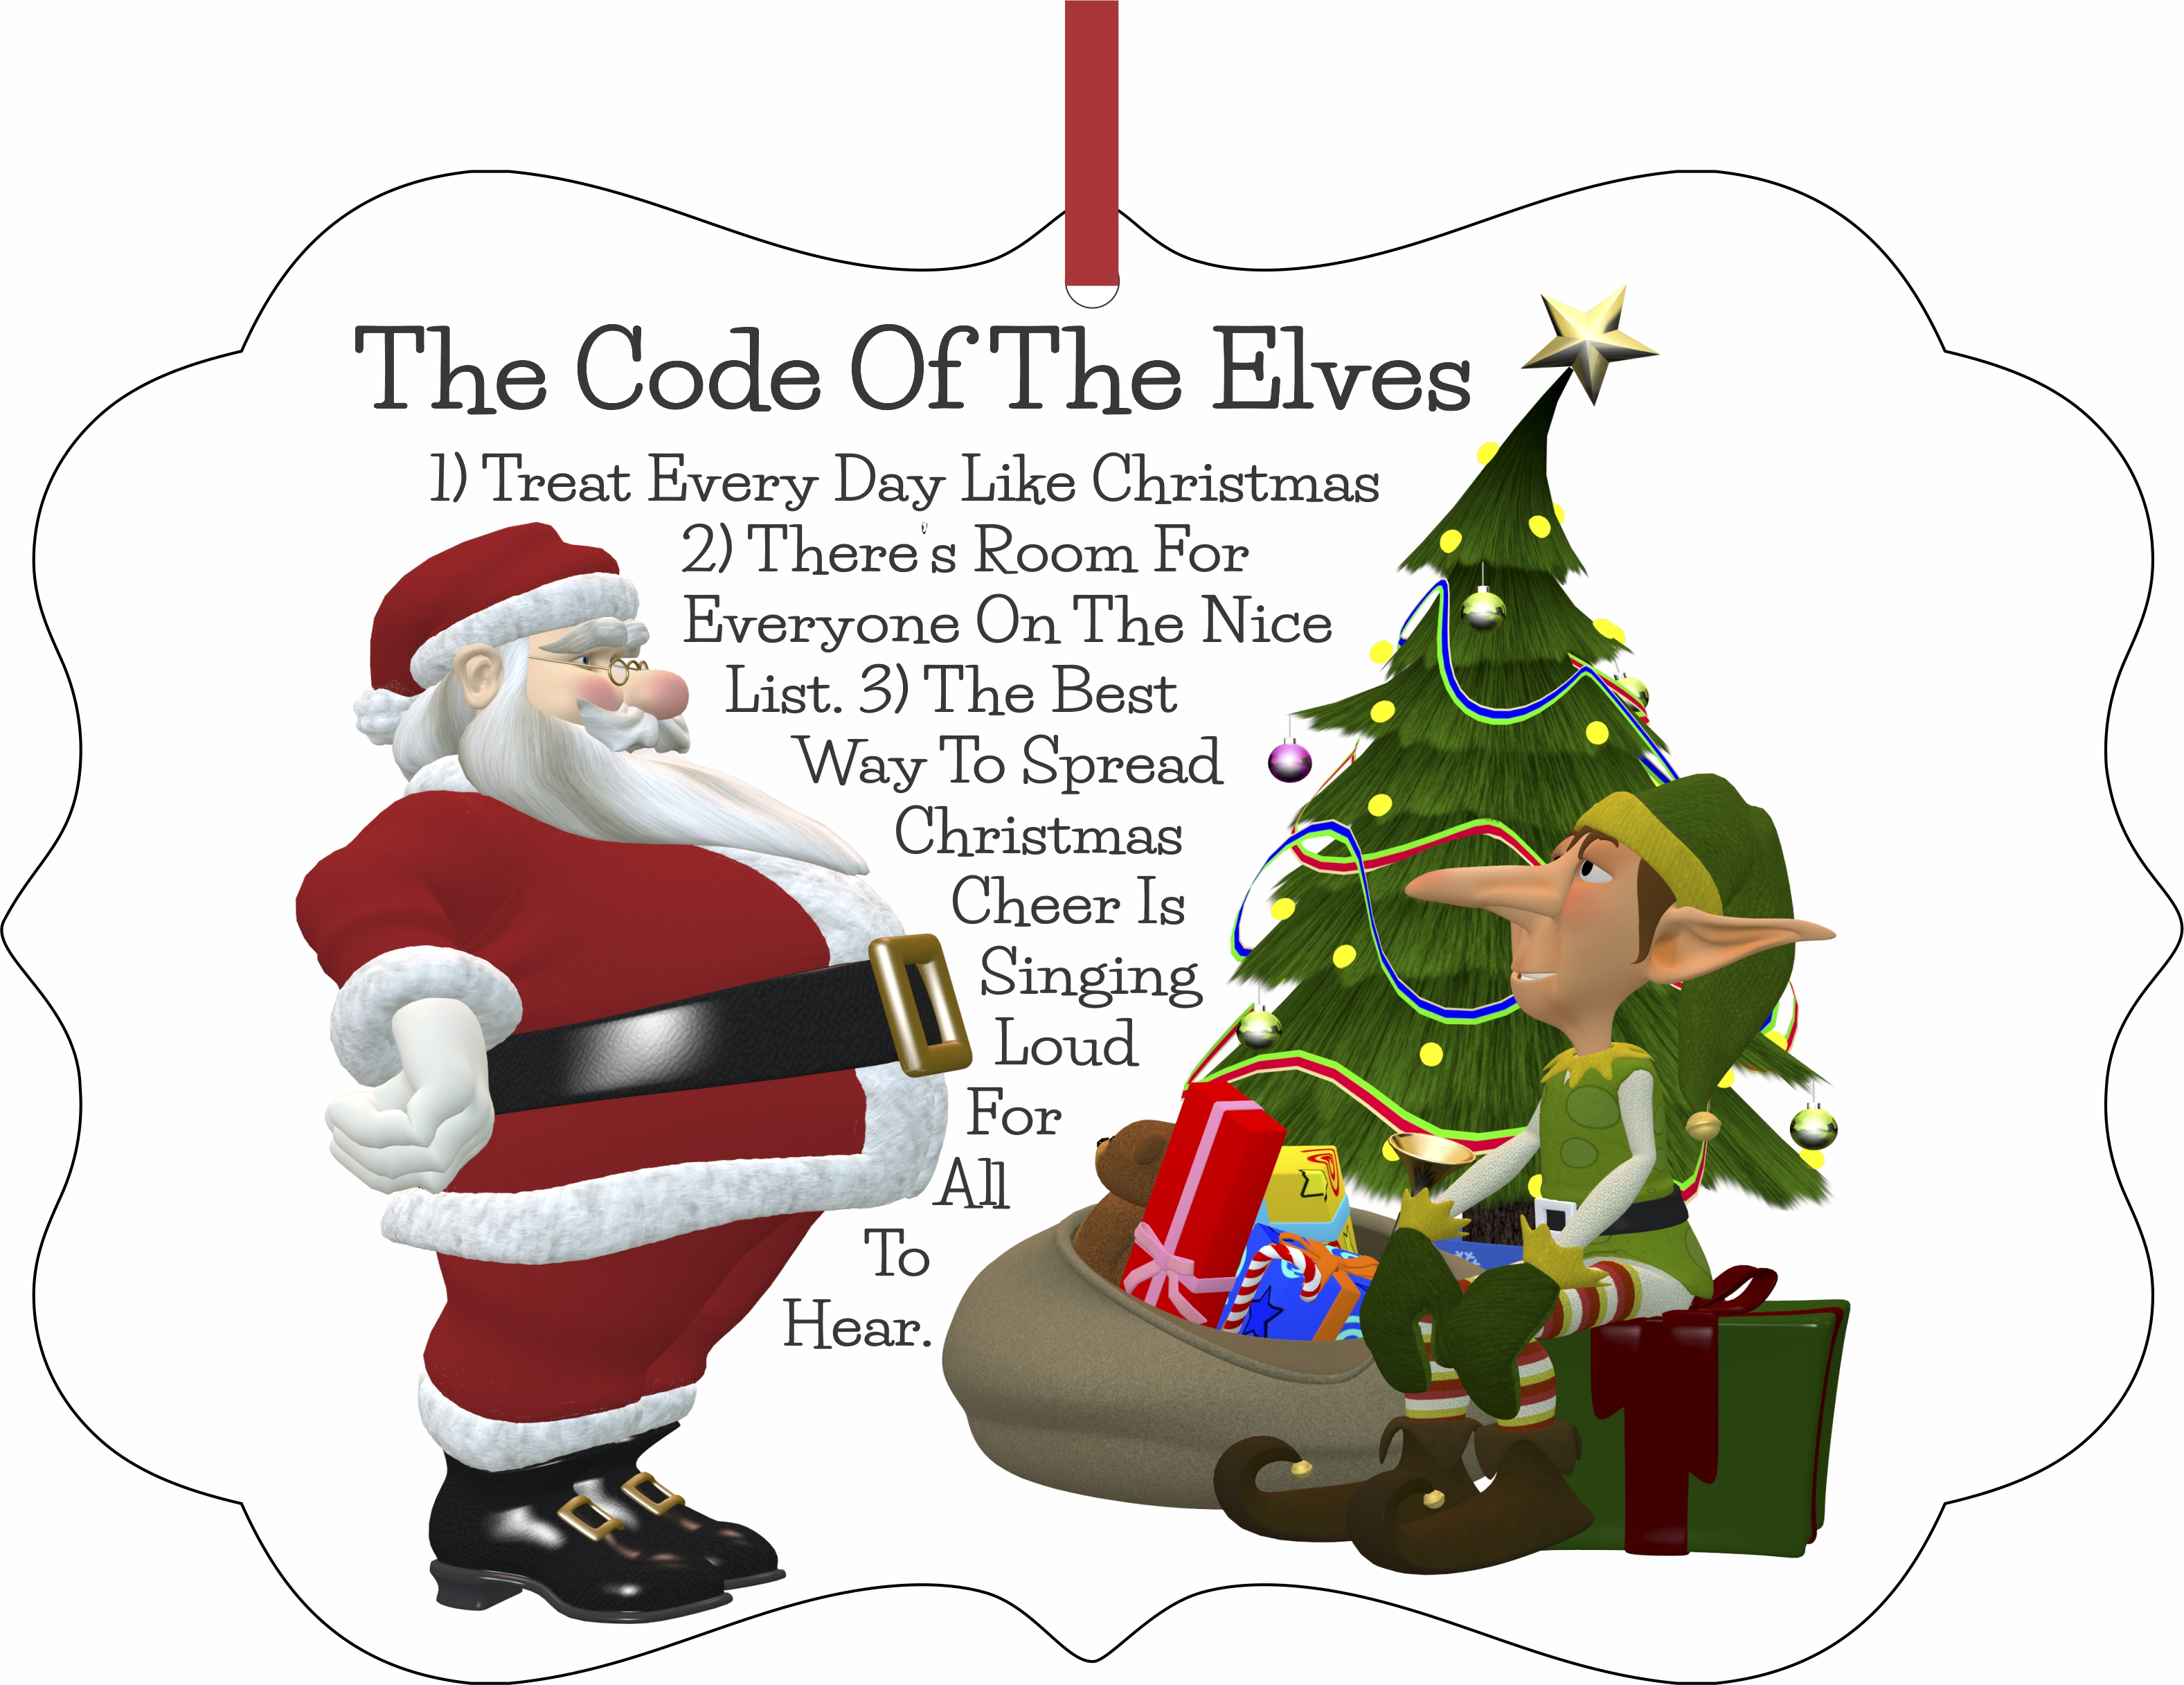 The Code of the Elves Christmas Aluminum SemiGloss Quality Aluminum Benelux Shaped Hanging Christmas Holiday Tree Ornament Made in the U.S.A. - Walmart.com